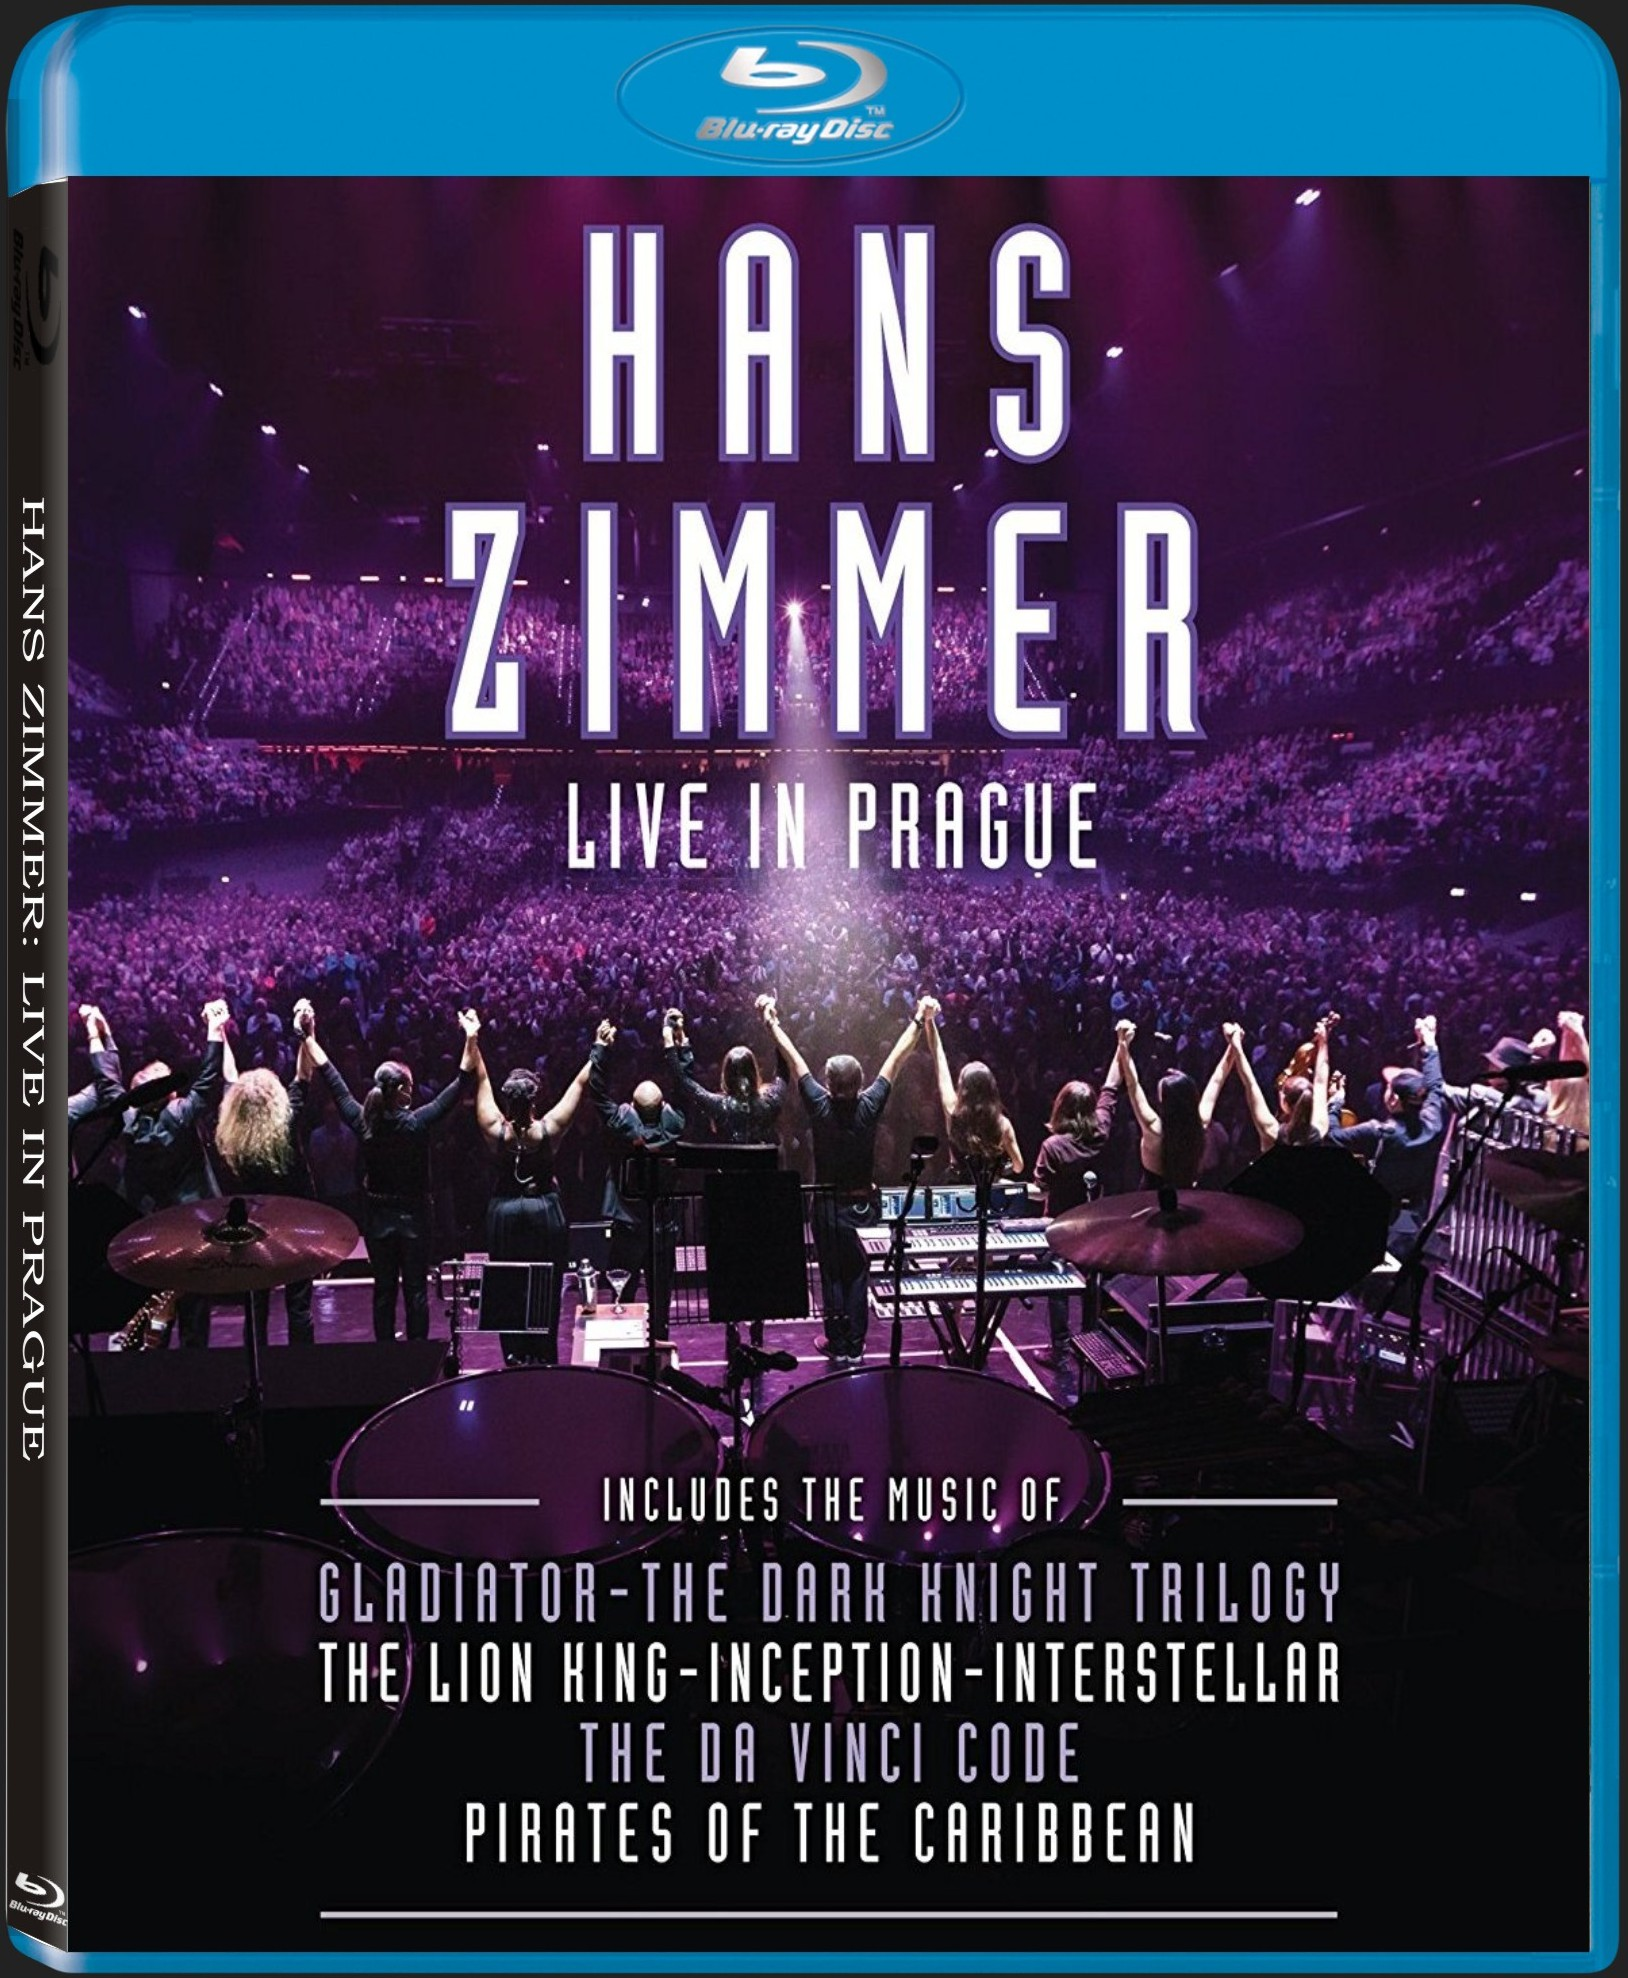 HANS ZIMMER: LIVE IN PRAGUE 2016 - Blu-ray